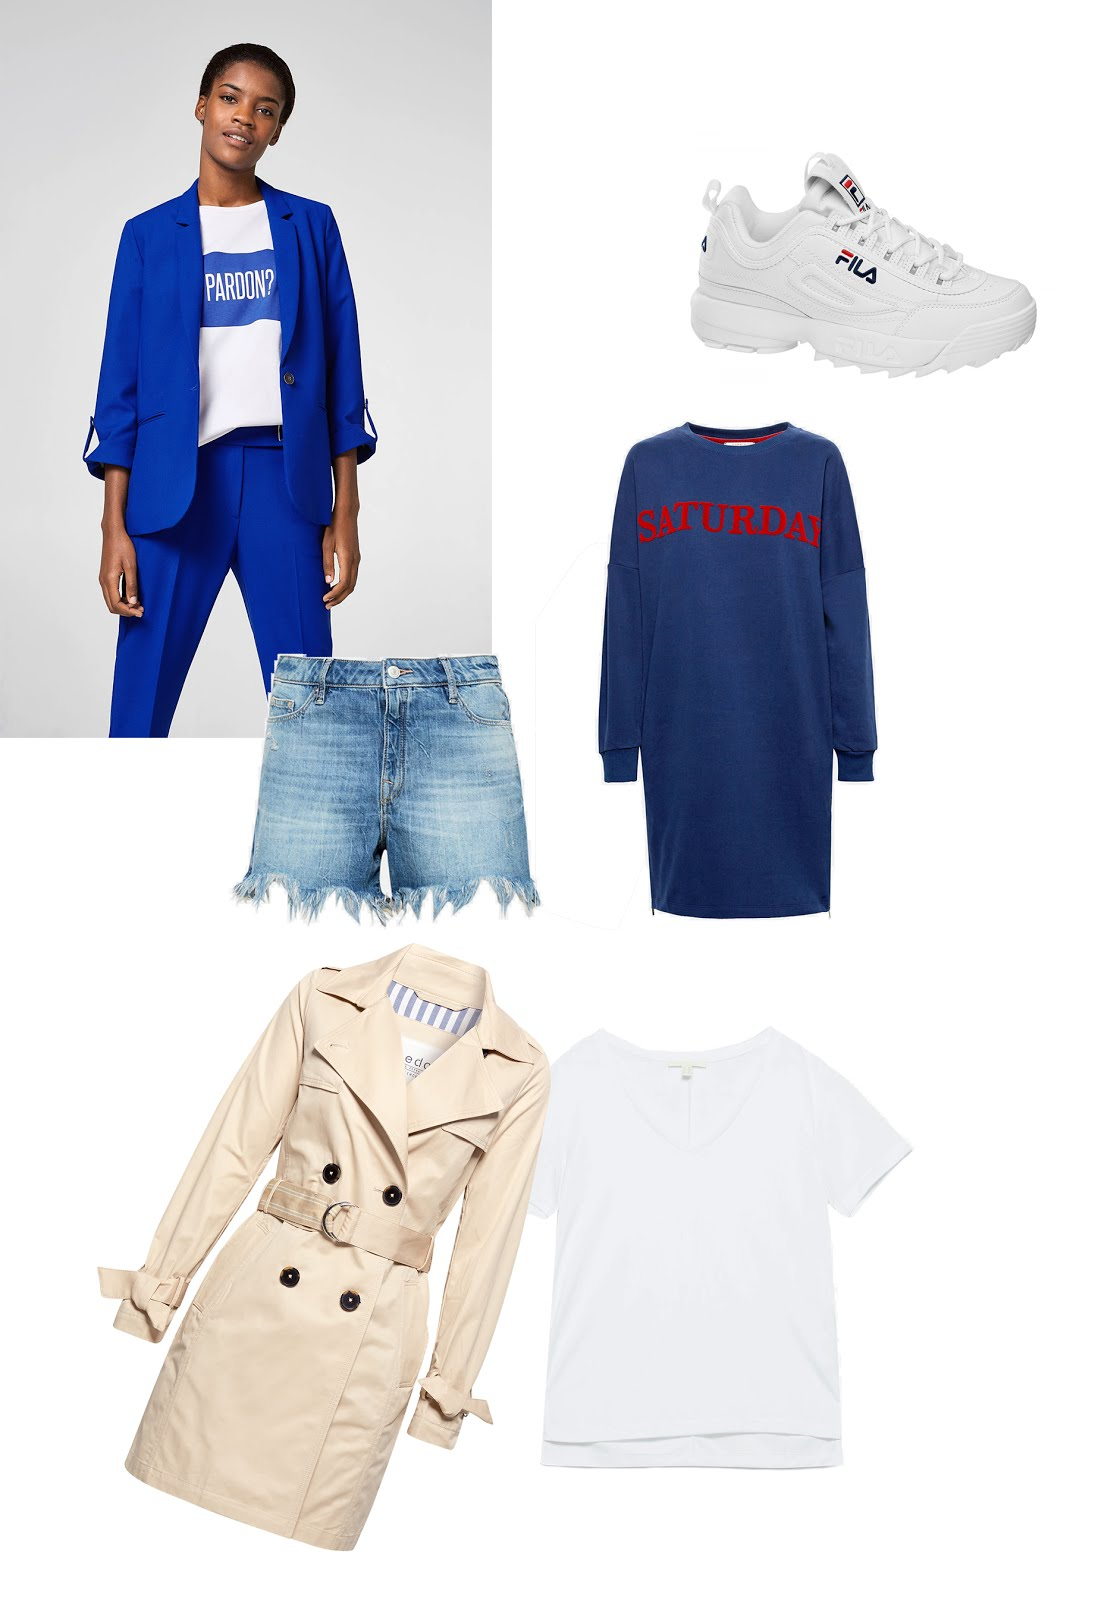 Esprit, spring, summer, SS18, trends, trench coat, cobalt blue, suit, fila disruptor, sweater dress, jeans shorts